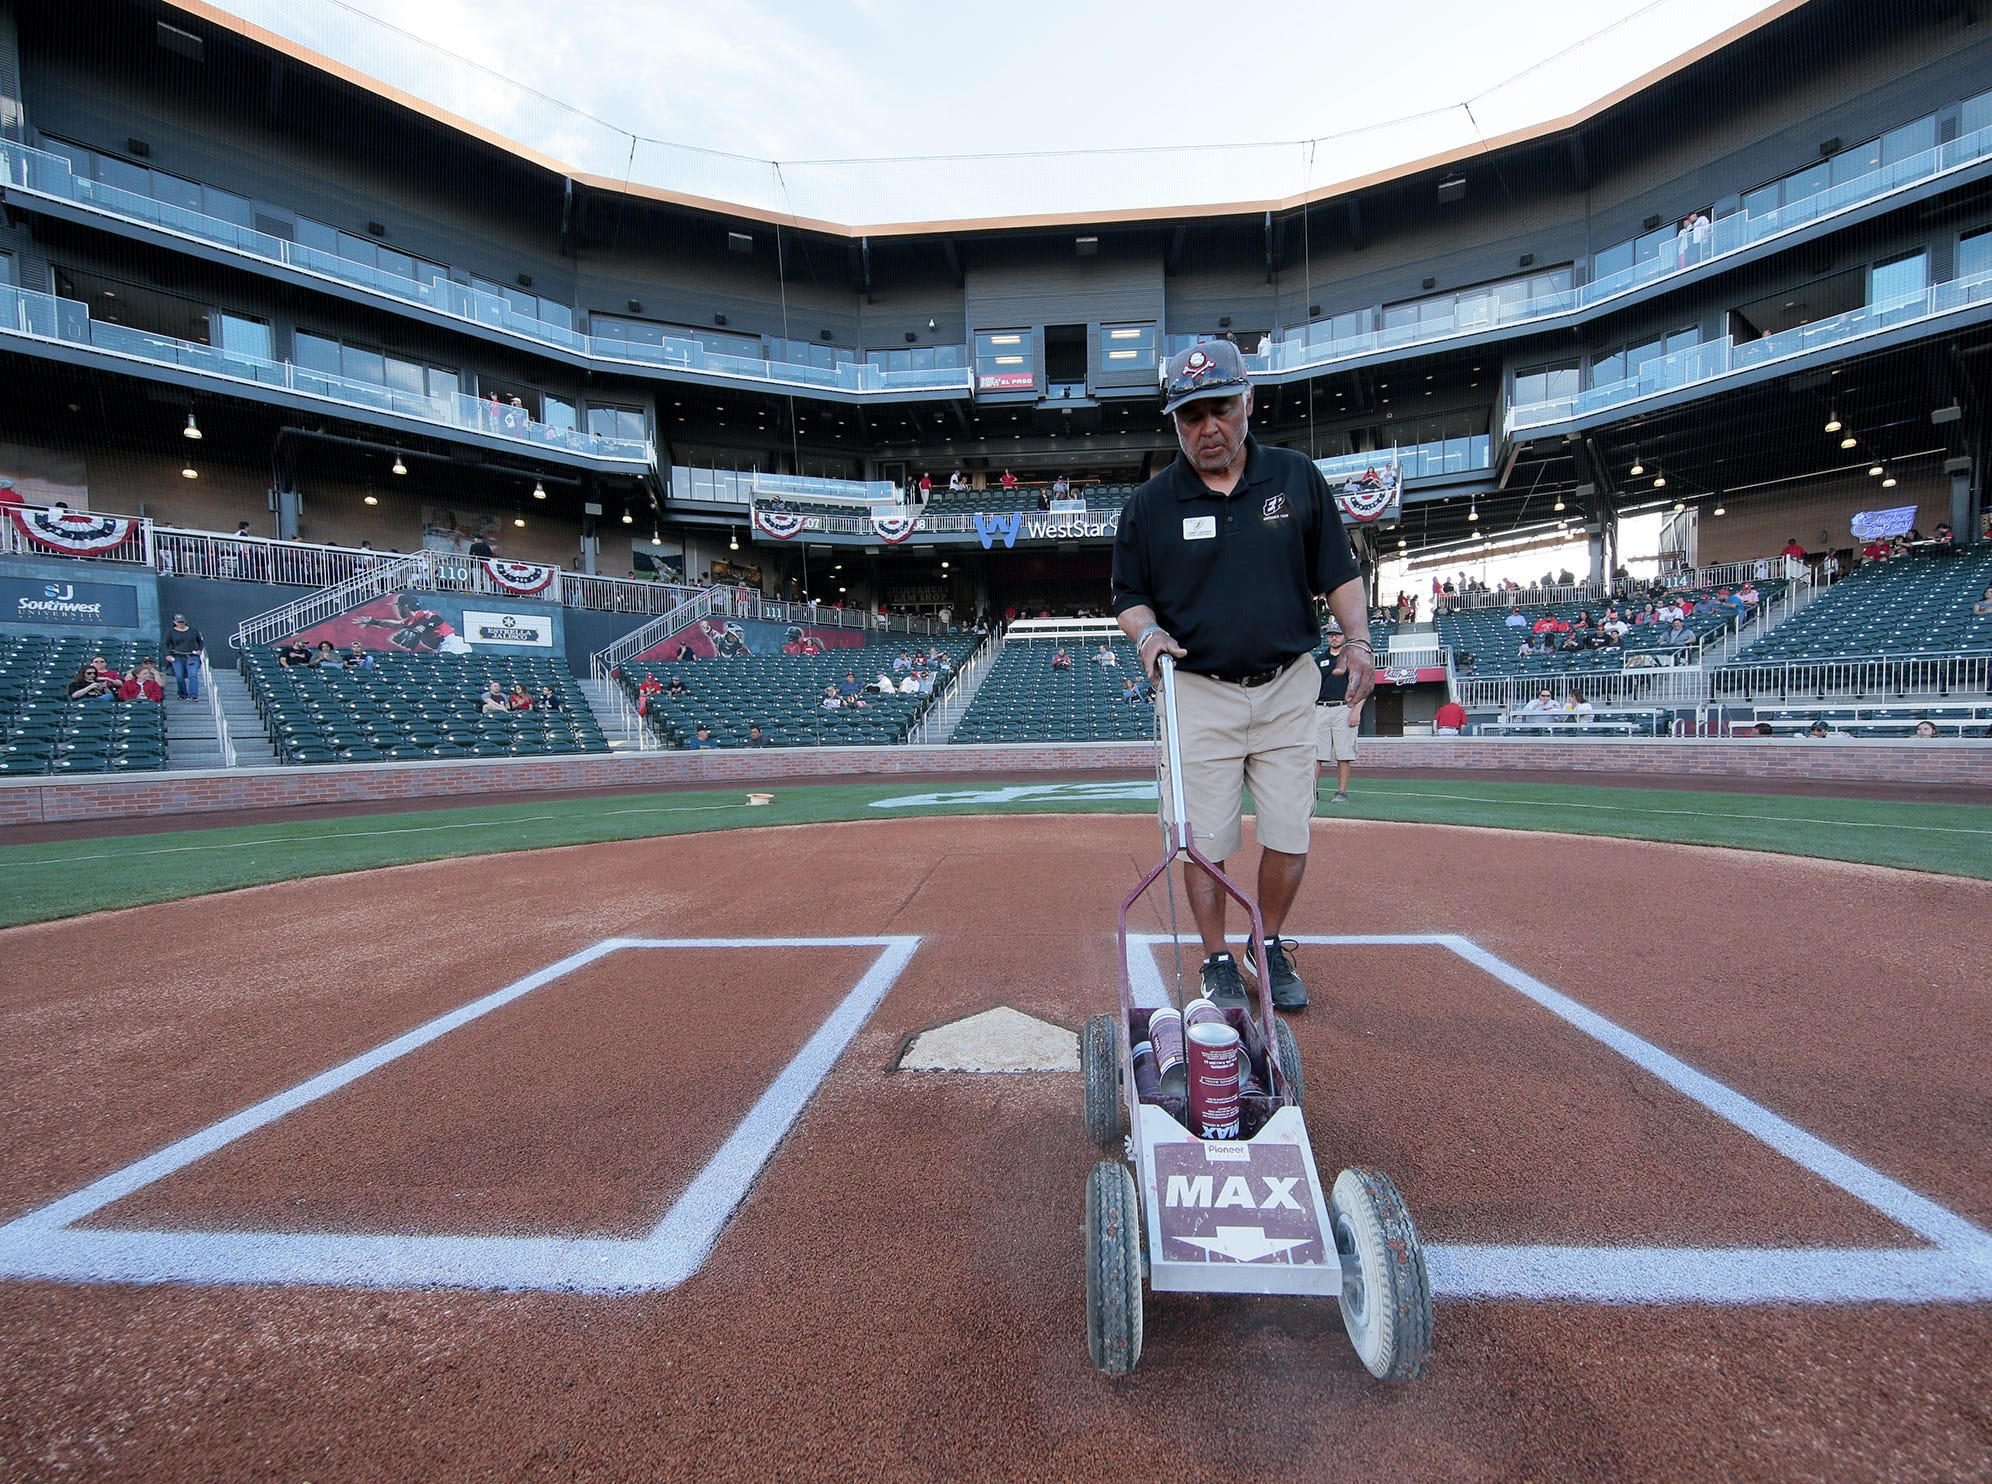 The El Paso Chihuahuas/Locomotive grounds crew pulls off a miracle and delivers baseball only days after a soccer game.